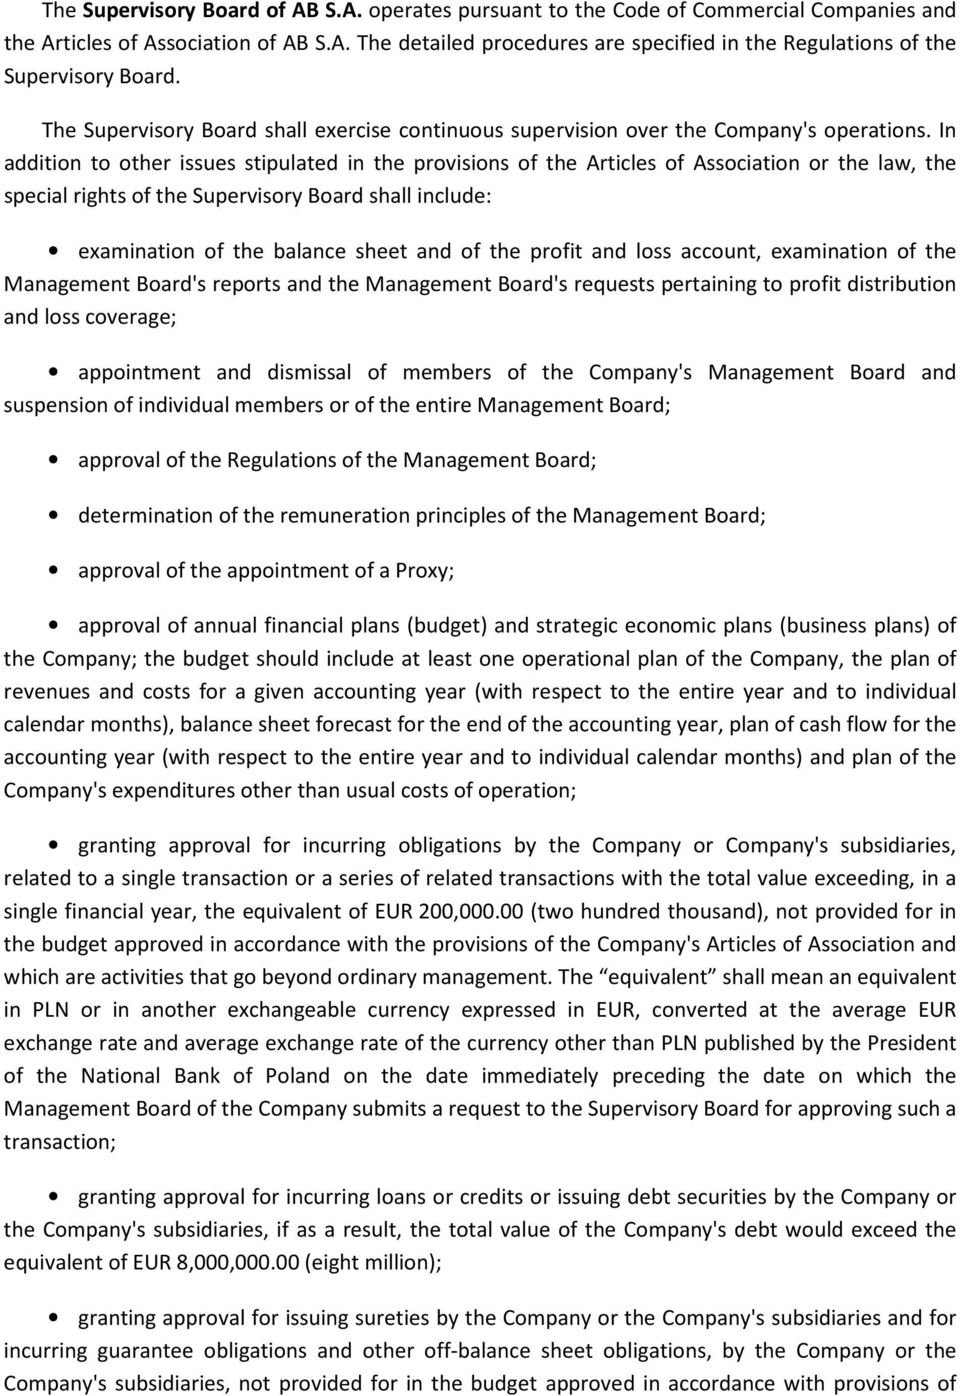 In addition to other issues stipulated in the provisions of the Articles of Association or the law, the special rights of the Supervisory Board shall include: examination of the balance sheet and of